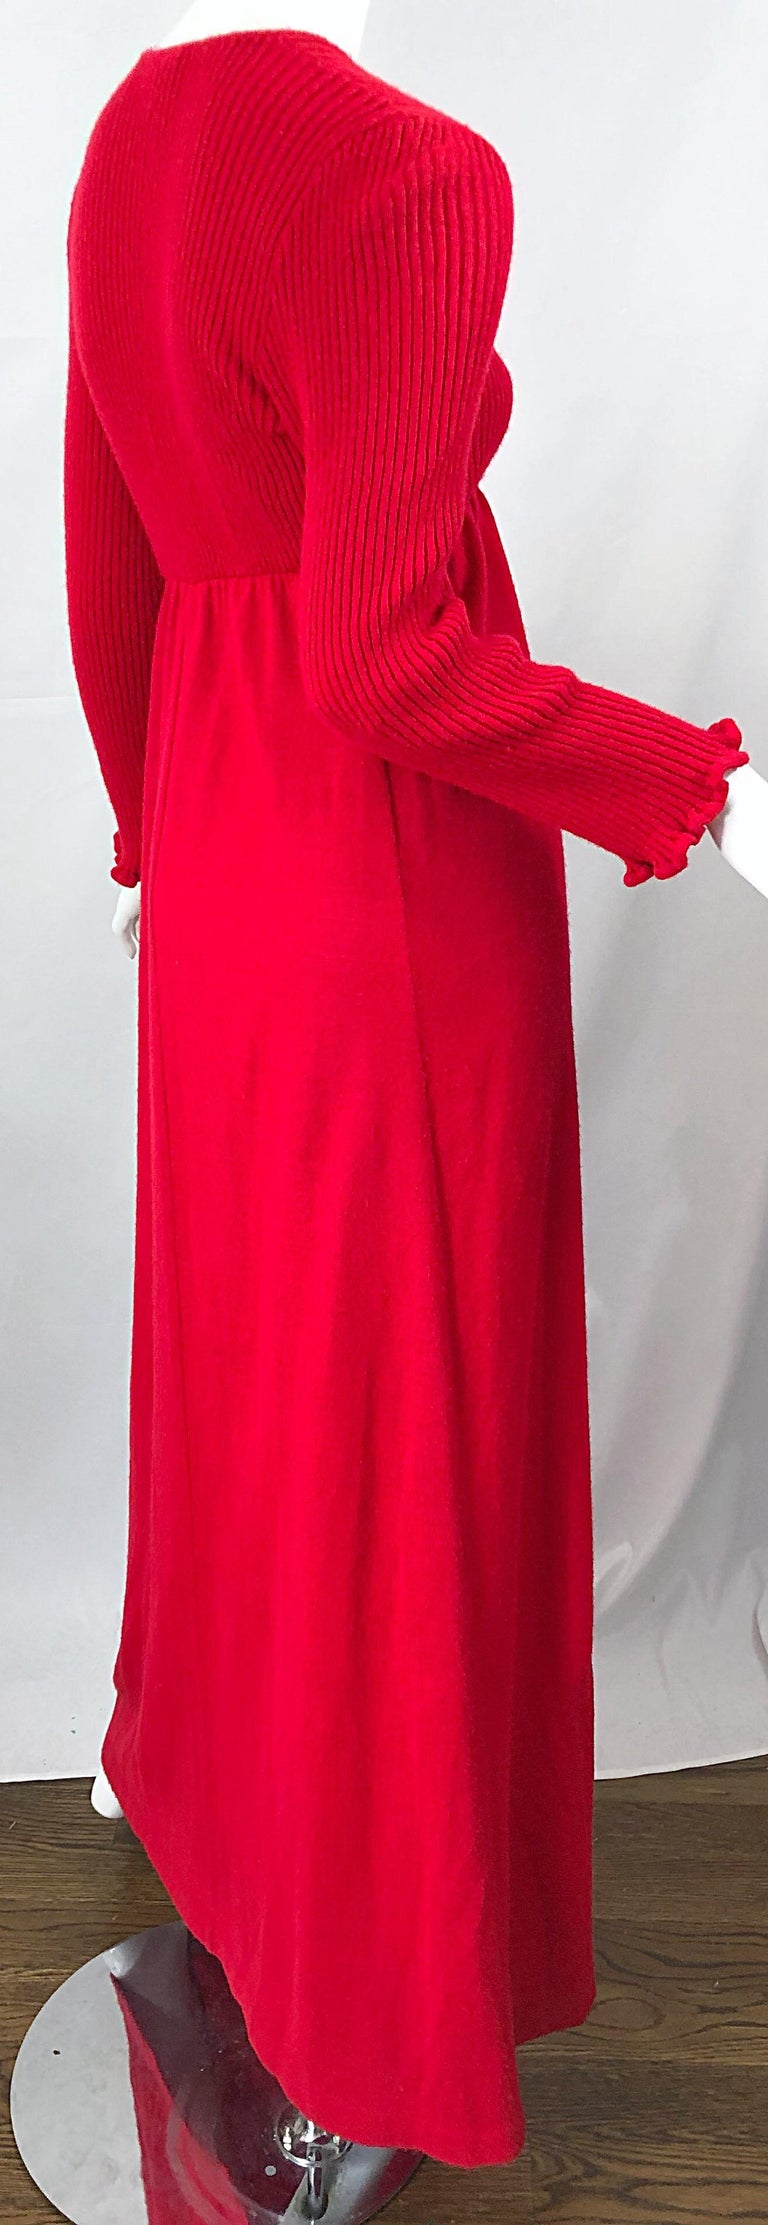 Vintage Joseph Magnin 1970s Lipstick Red Long Sleeve Wool 70s Sweater Maxi Dress For Sale 2